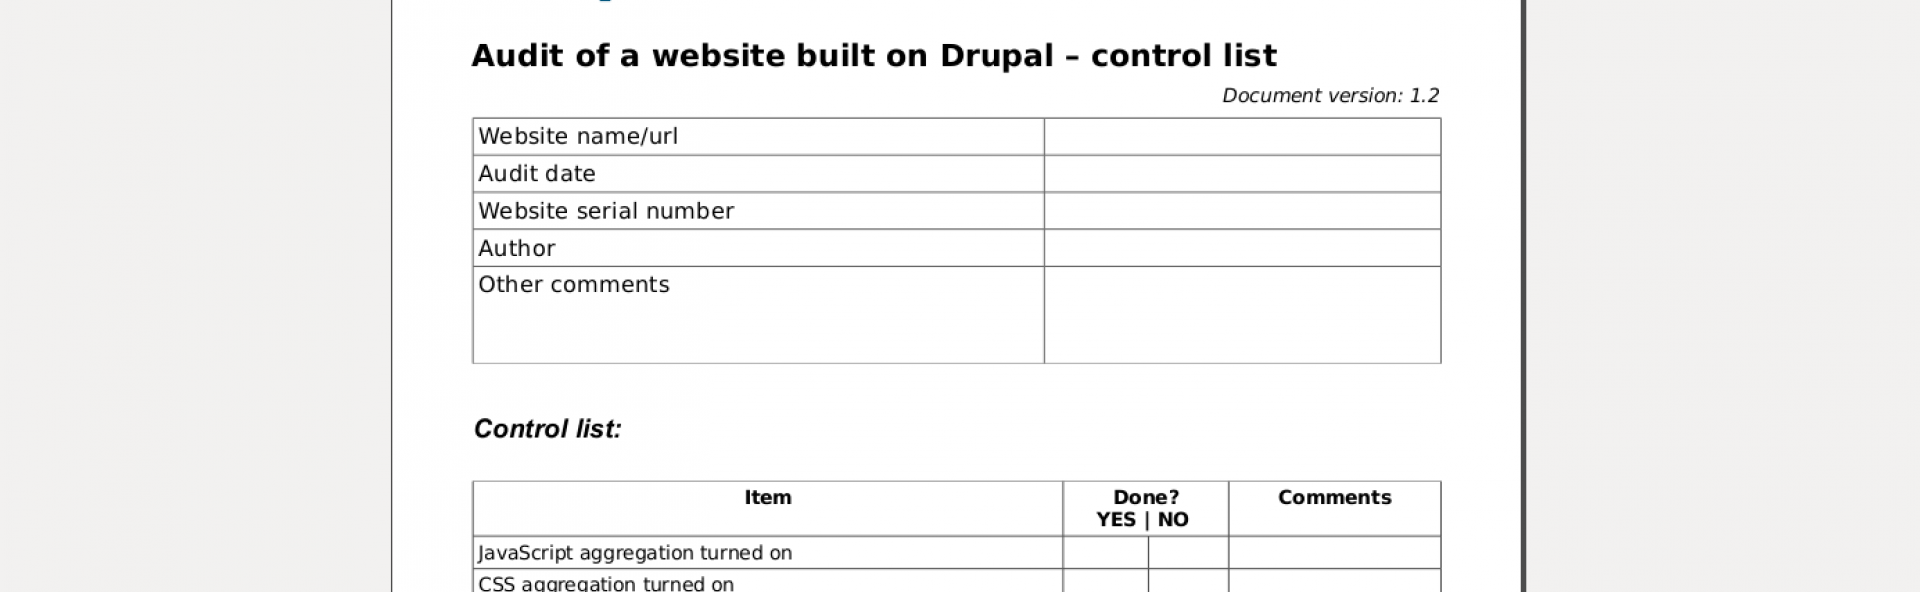 Audit of a Drupal website - control list